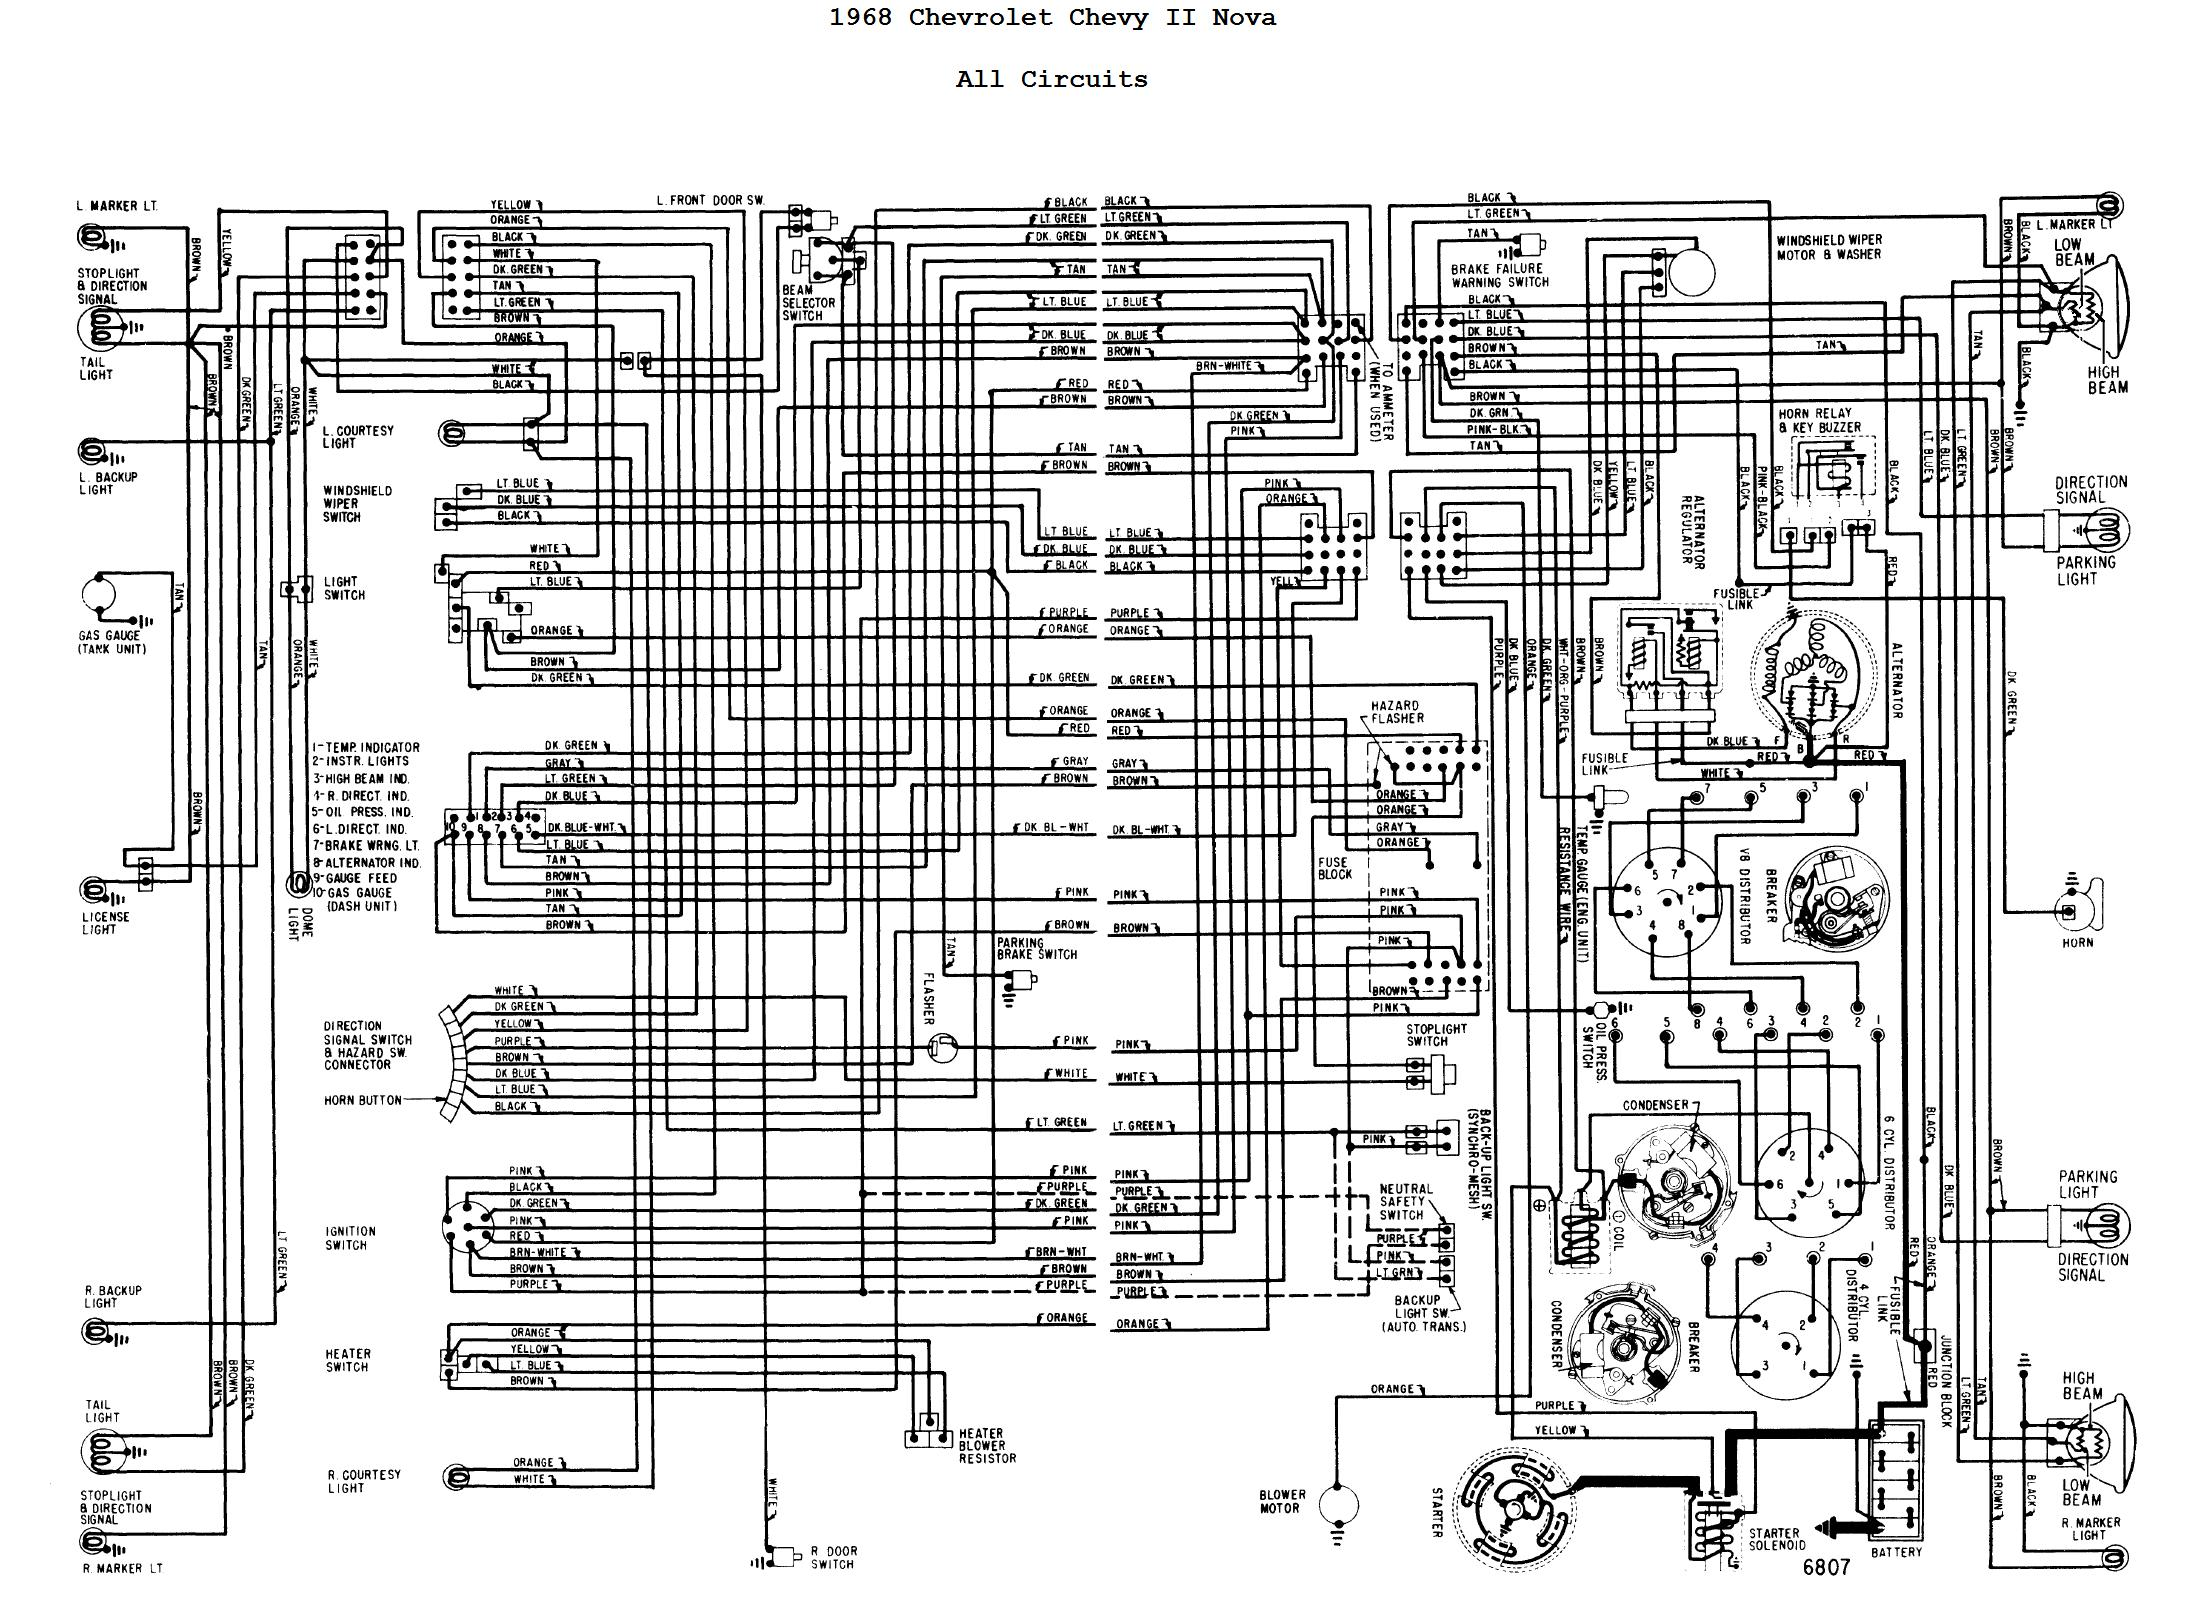 Wiring Diagram For 1970 Nova Wiring Schematic Of Dish Ad6e6 Periihh1 Jeanjaures37 Fr